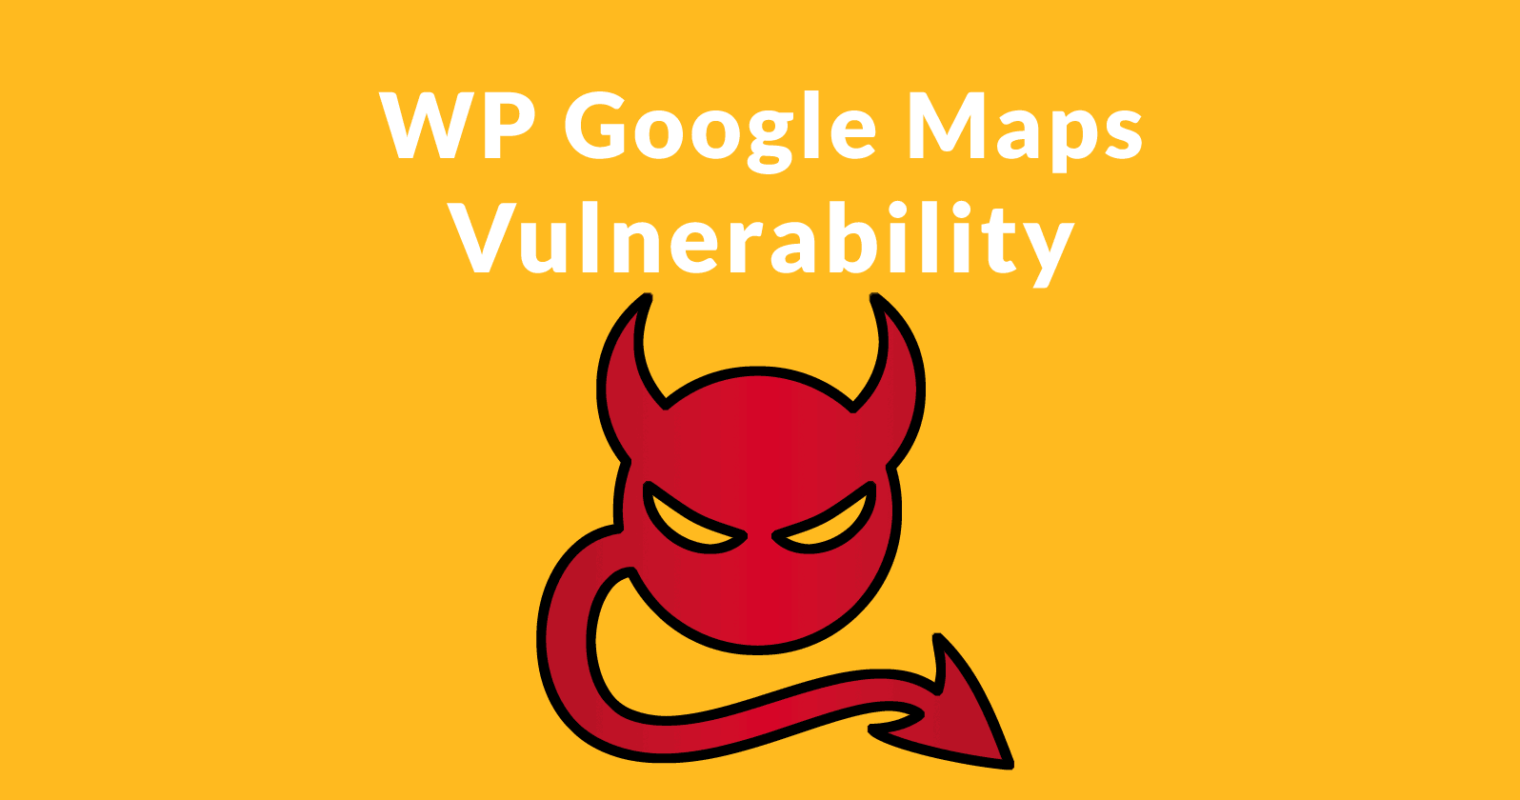 WP Google Maps Plugin Vulnerable to SQL Injection Exploit